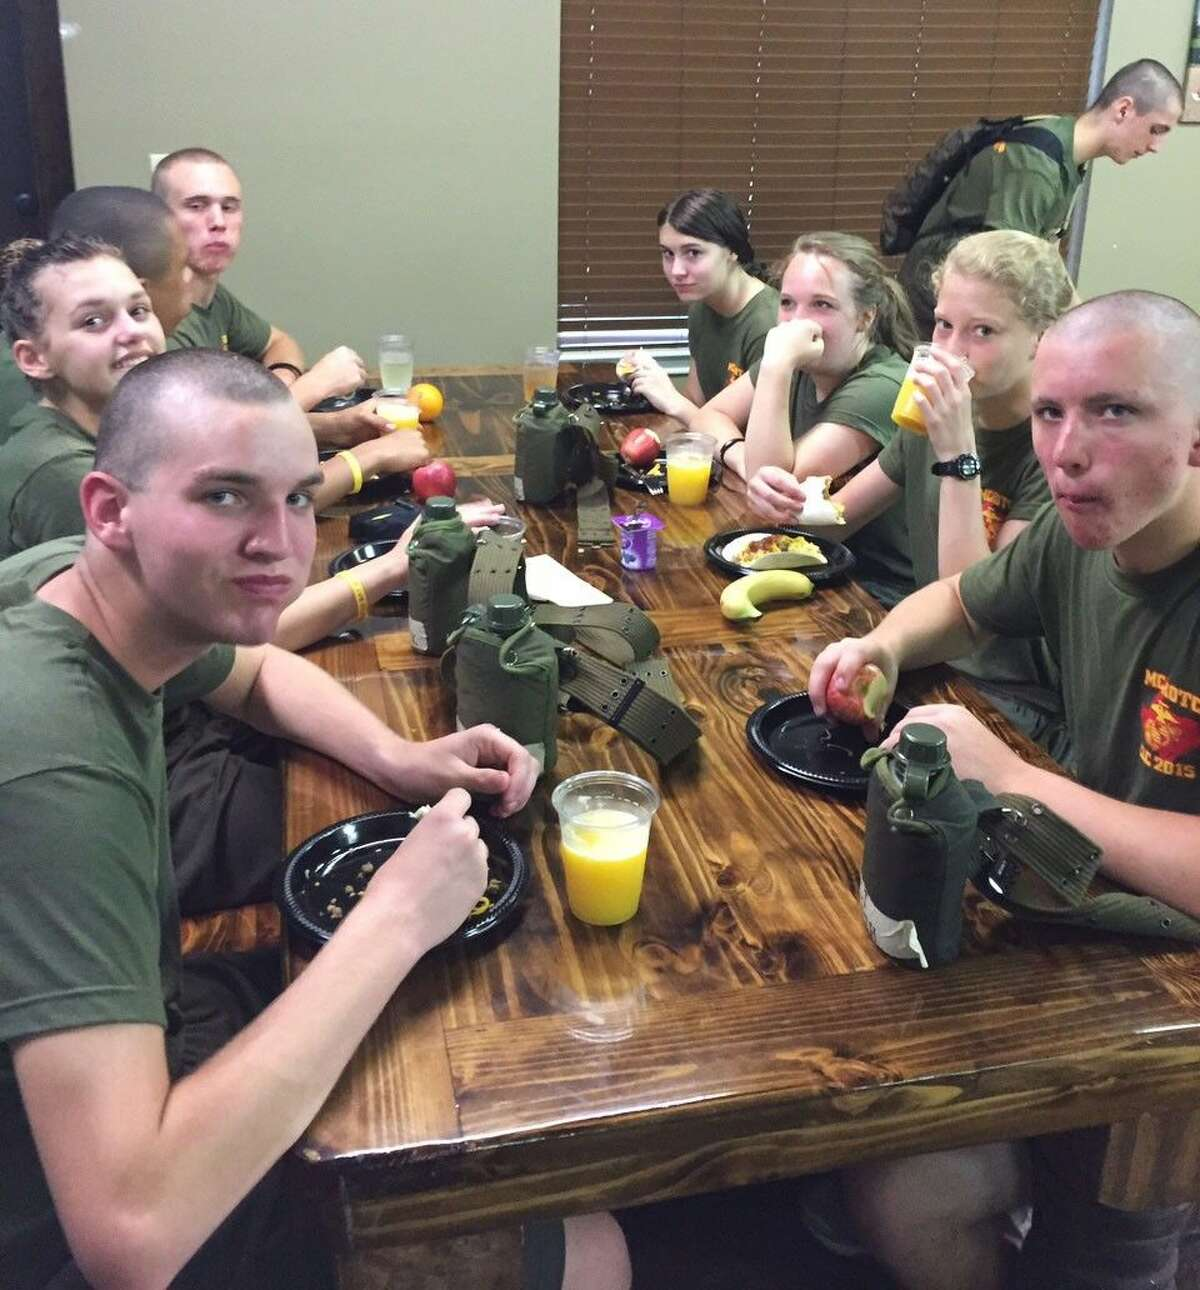 Marine Corps Junior ROTC cadets at chow during the Cadet Leadership Camp at New Braunfels, Texas.